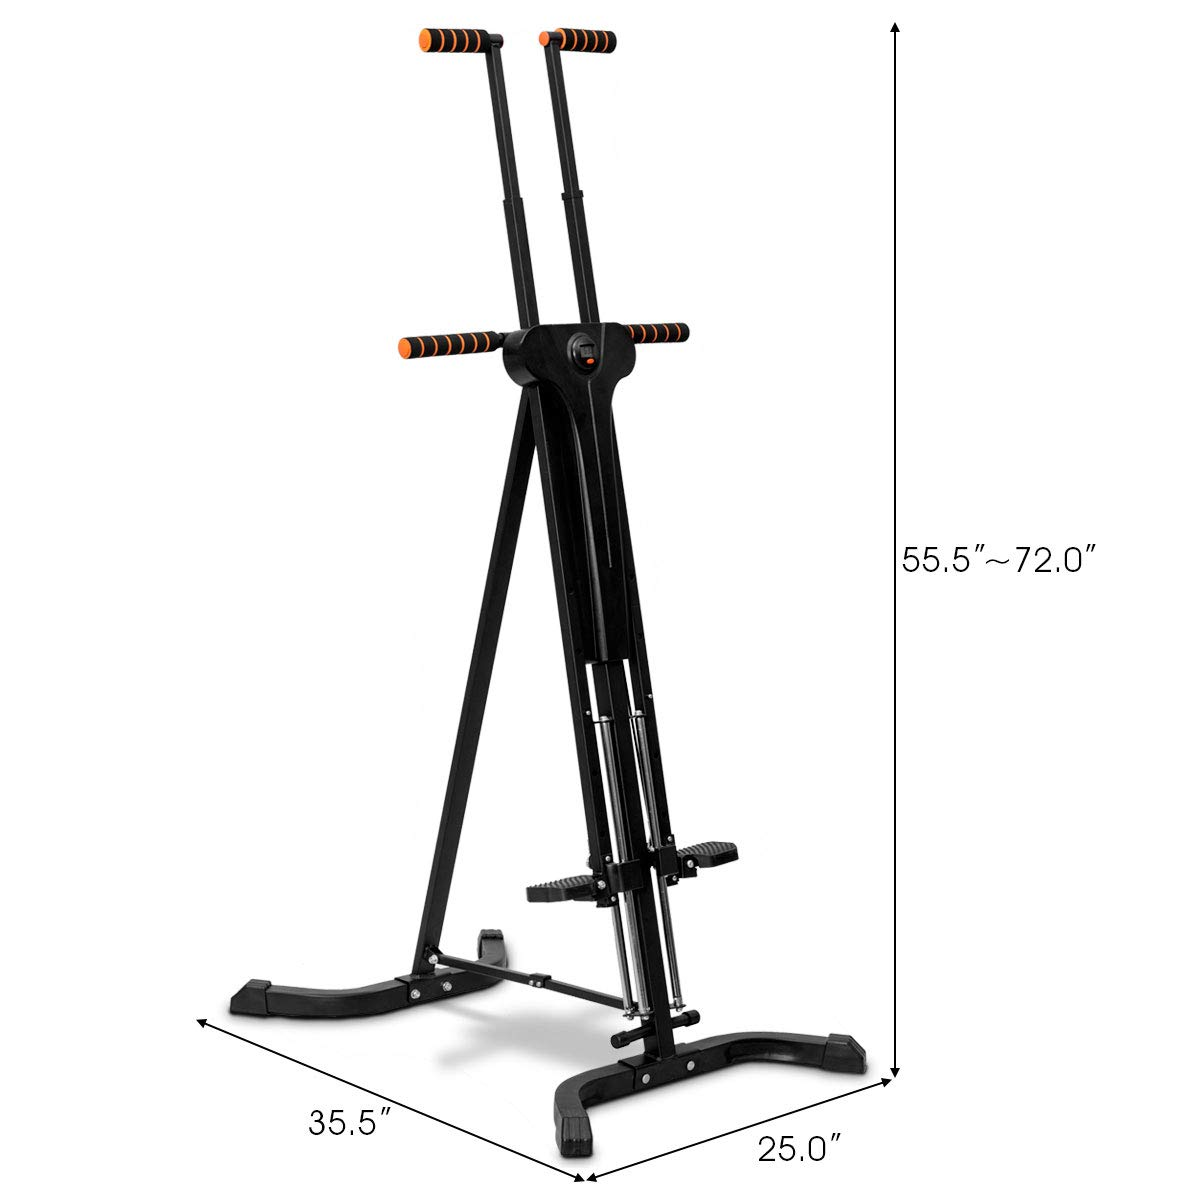 Goplus Vertical Climber Folding Stepper Climbing Exercise Machine w/Adjustable Height LCD Display Cardio Climbing System Home Gym (5 Adjustable Height) by Goplus (Image #7)